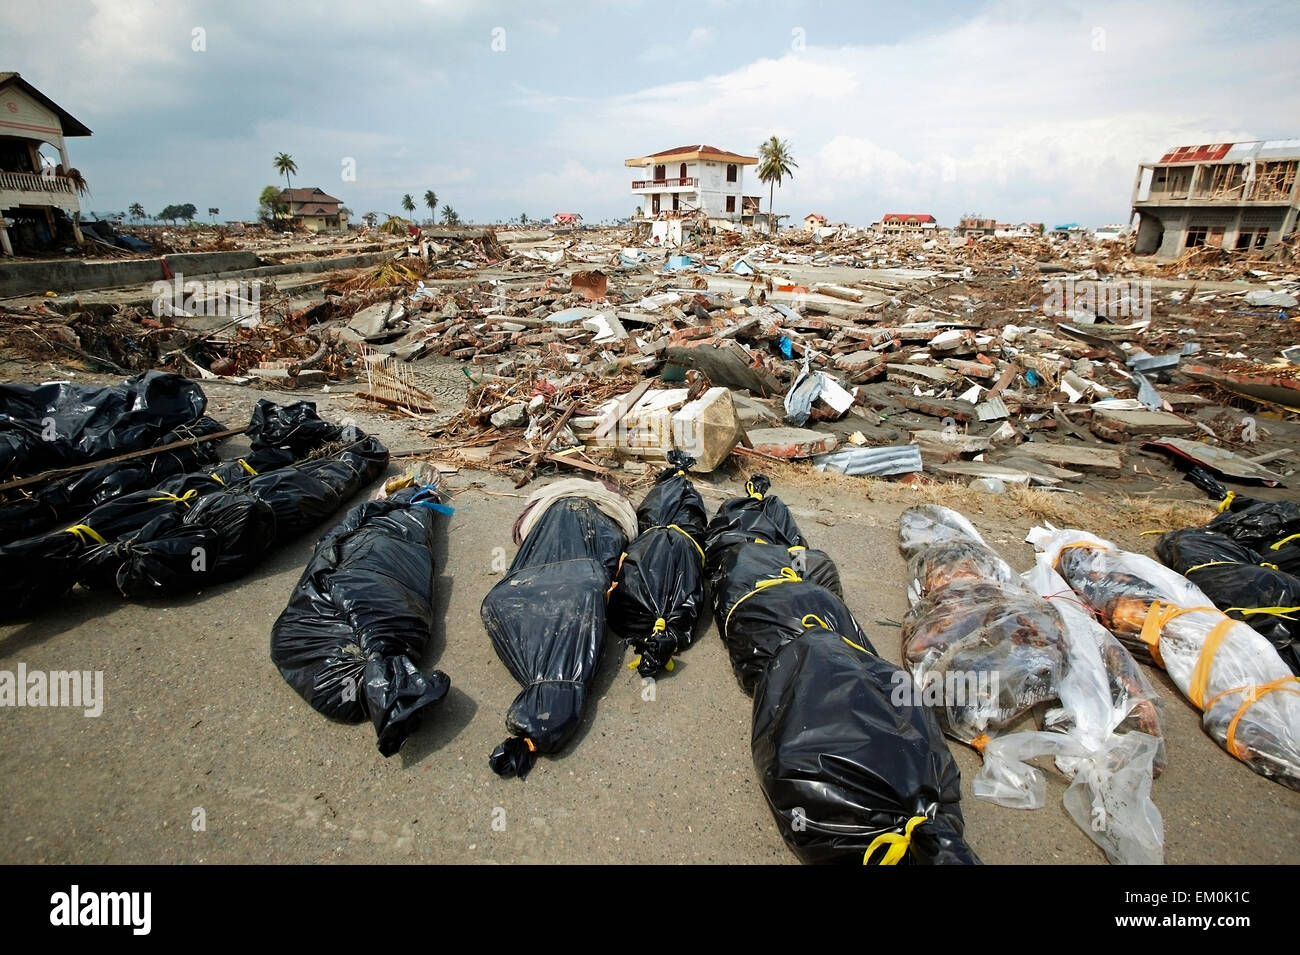 Body Bags And Debris After The Indian Ocean Earthquake And